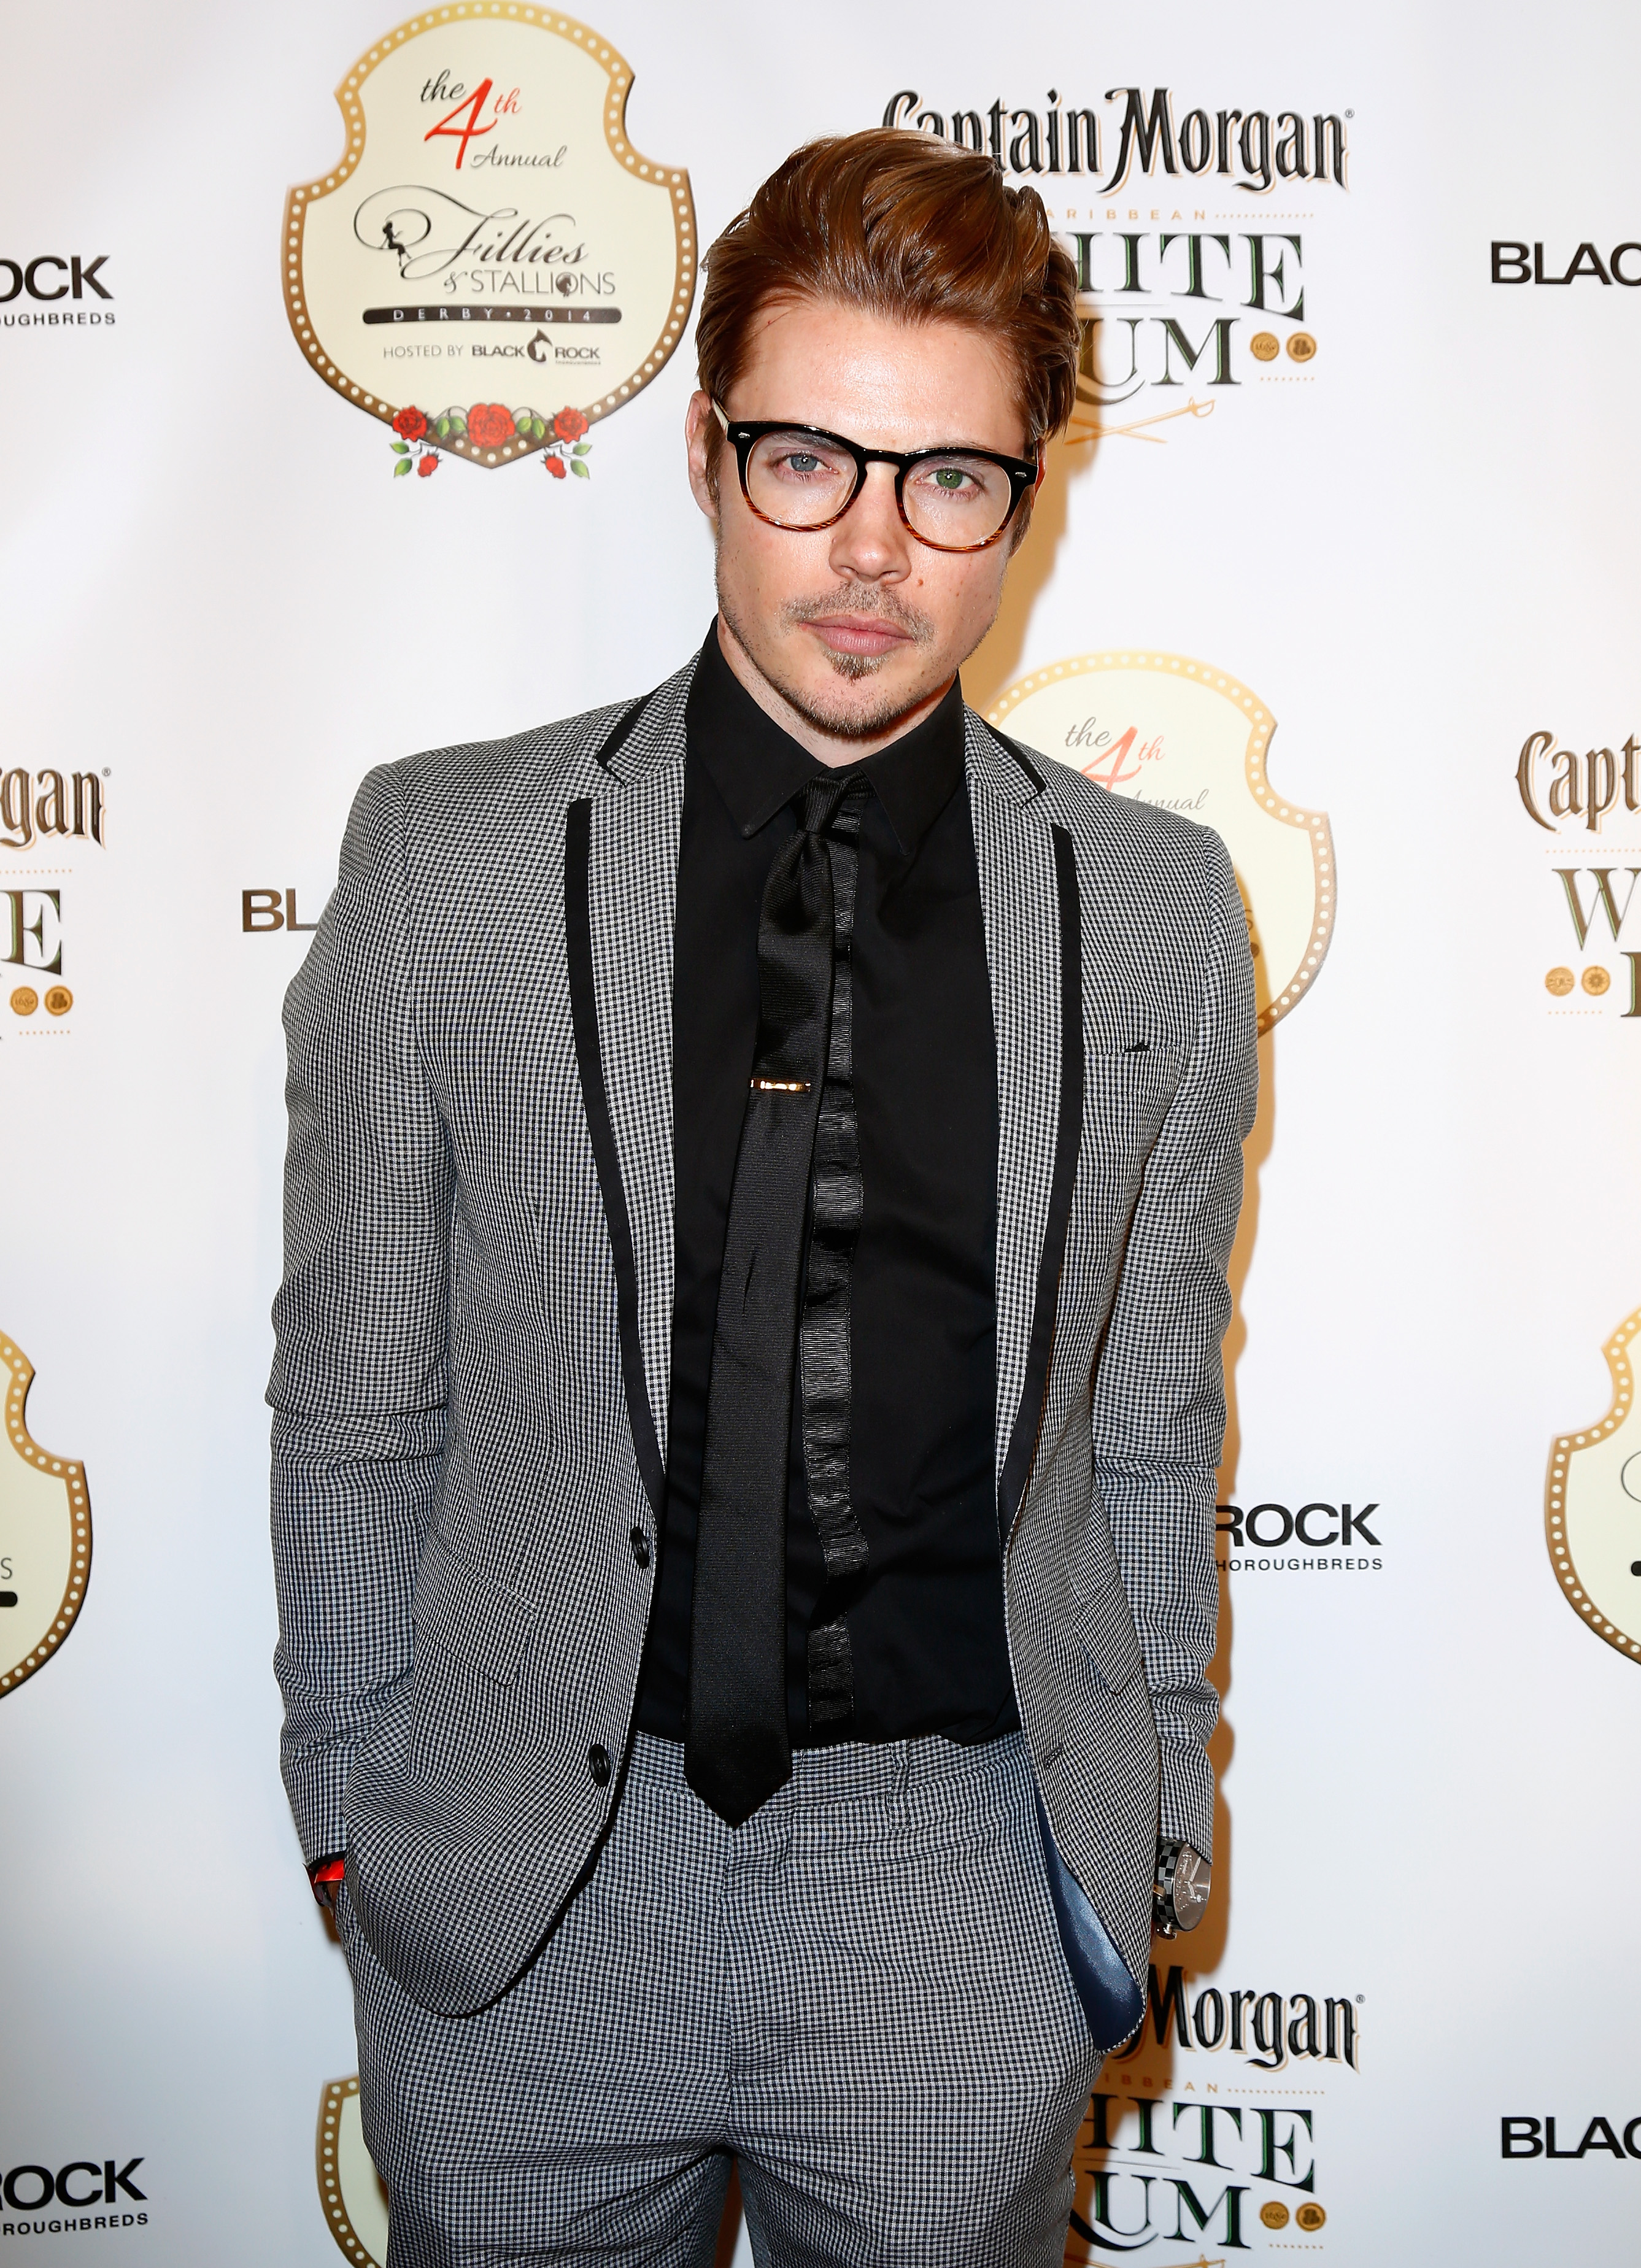 Actor Josh Henderson attends the Fourth Annual Fillies & Stallions party sponsored by Captain Morgan White Rum at Mellwood Arts Center on May 2, 2014 in Louisville, Kentucky.  (Photo by Michael Hickey/Getty Images for Captain Morgan White)